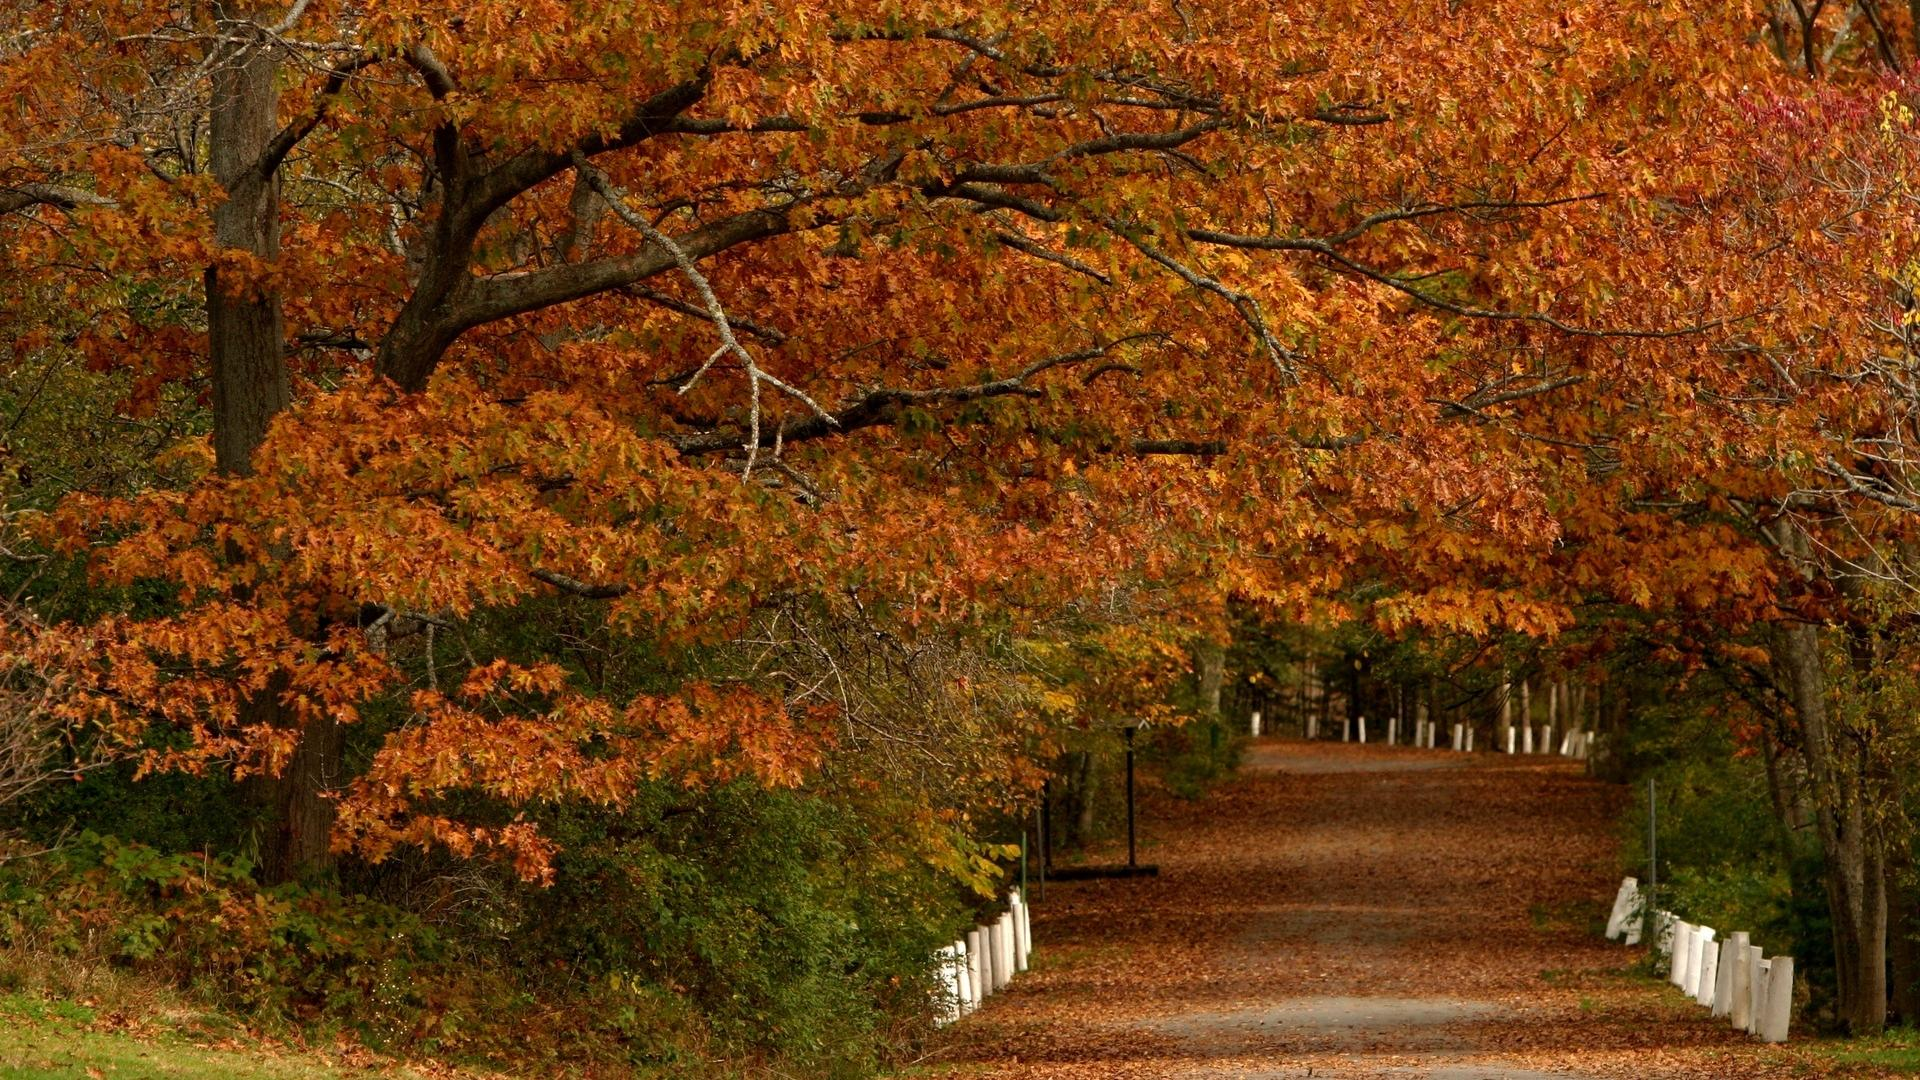 Fall Leaf Iphone Wallpaper Brown Cool And Free Wallpapers For Download At